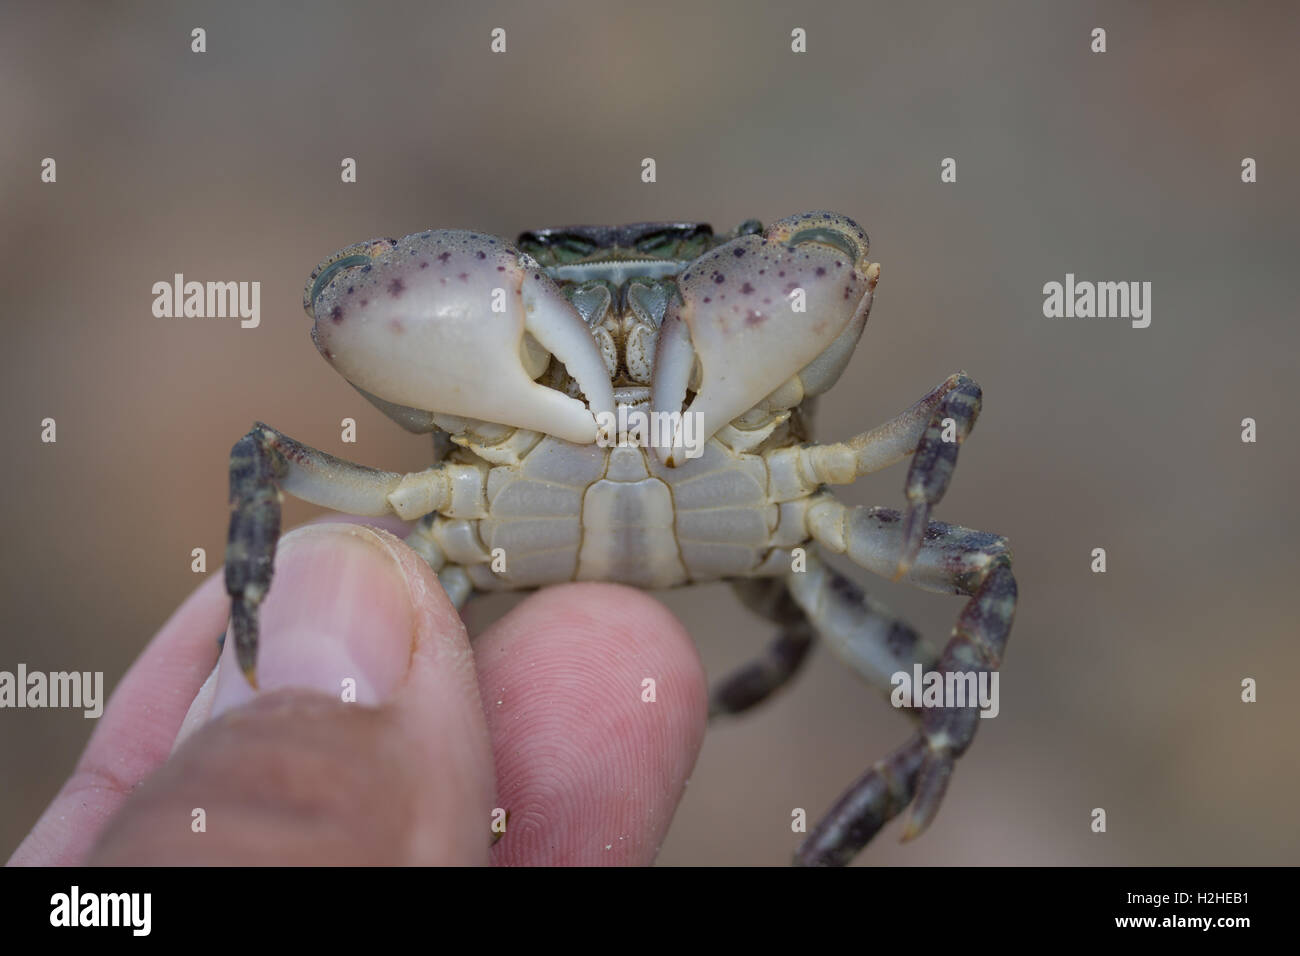 Asian Shore Crab,Hemigrapsus sanguineus,found within the inter tidal zone,east coast of Jersey,Channel islands. - Stock Image